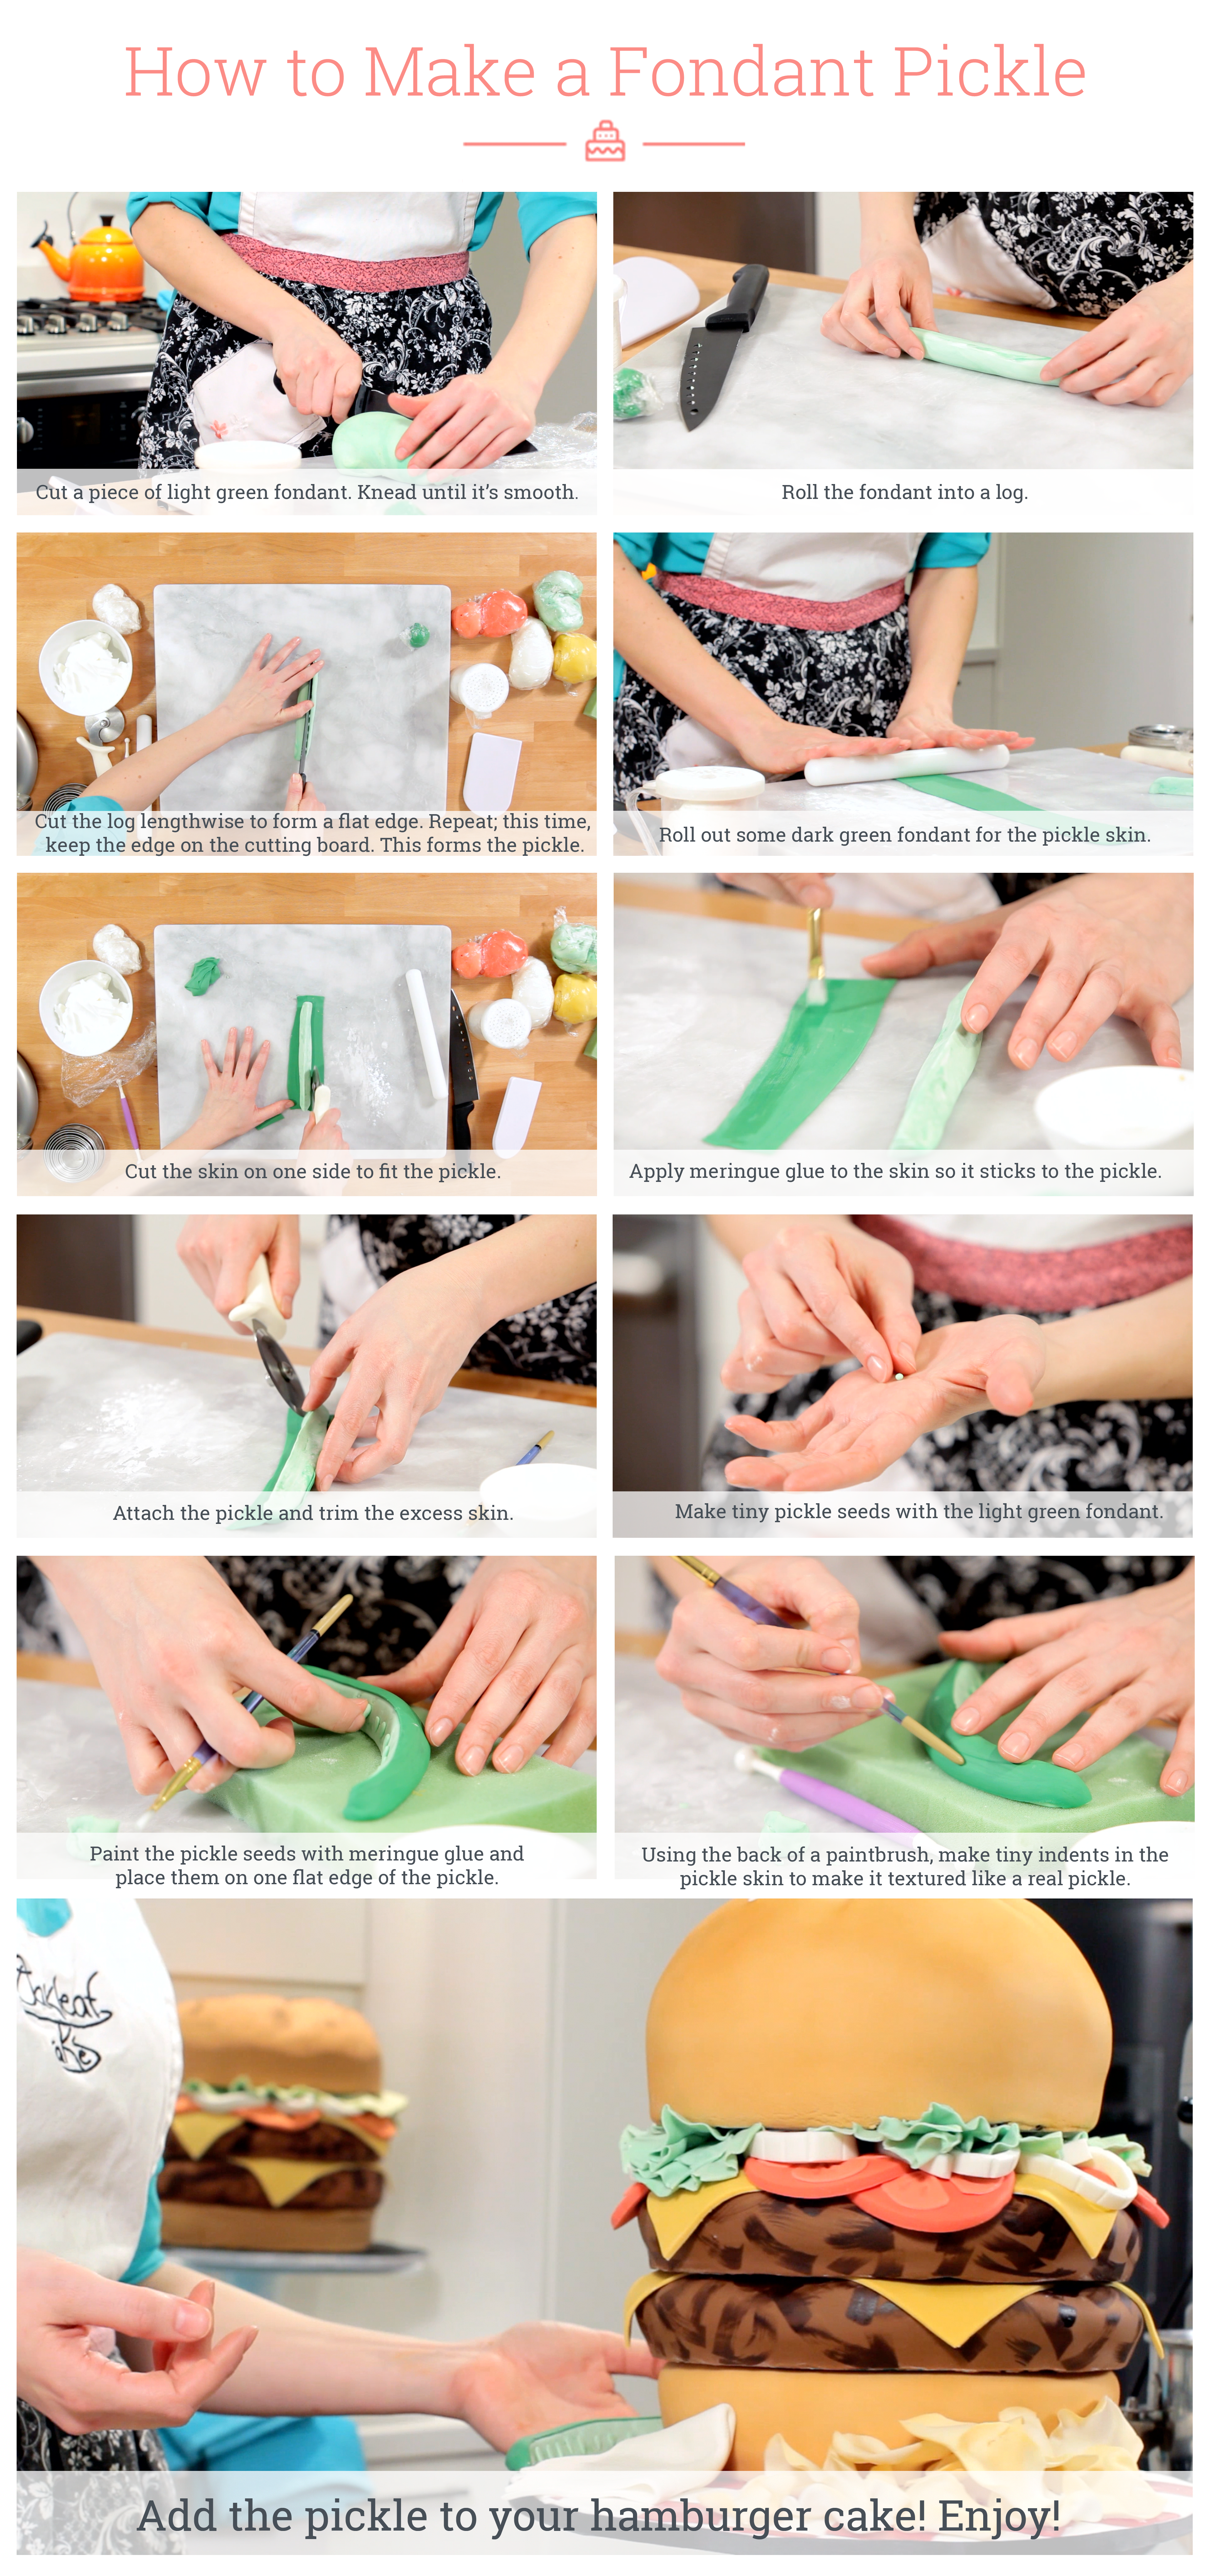 Amandas Course Covers How To Carve A Cake Cover It In Fondant Airbrush And Much More This Mini Tutorial The Steps